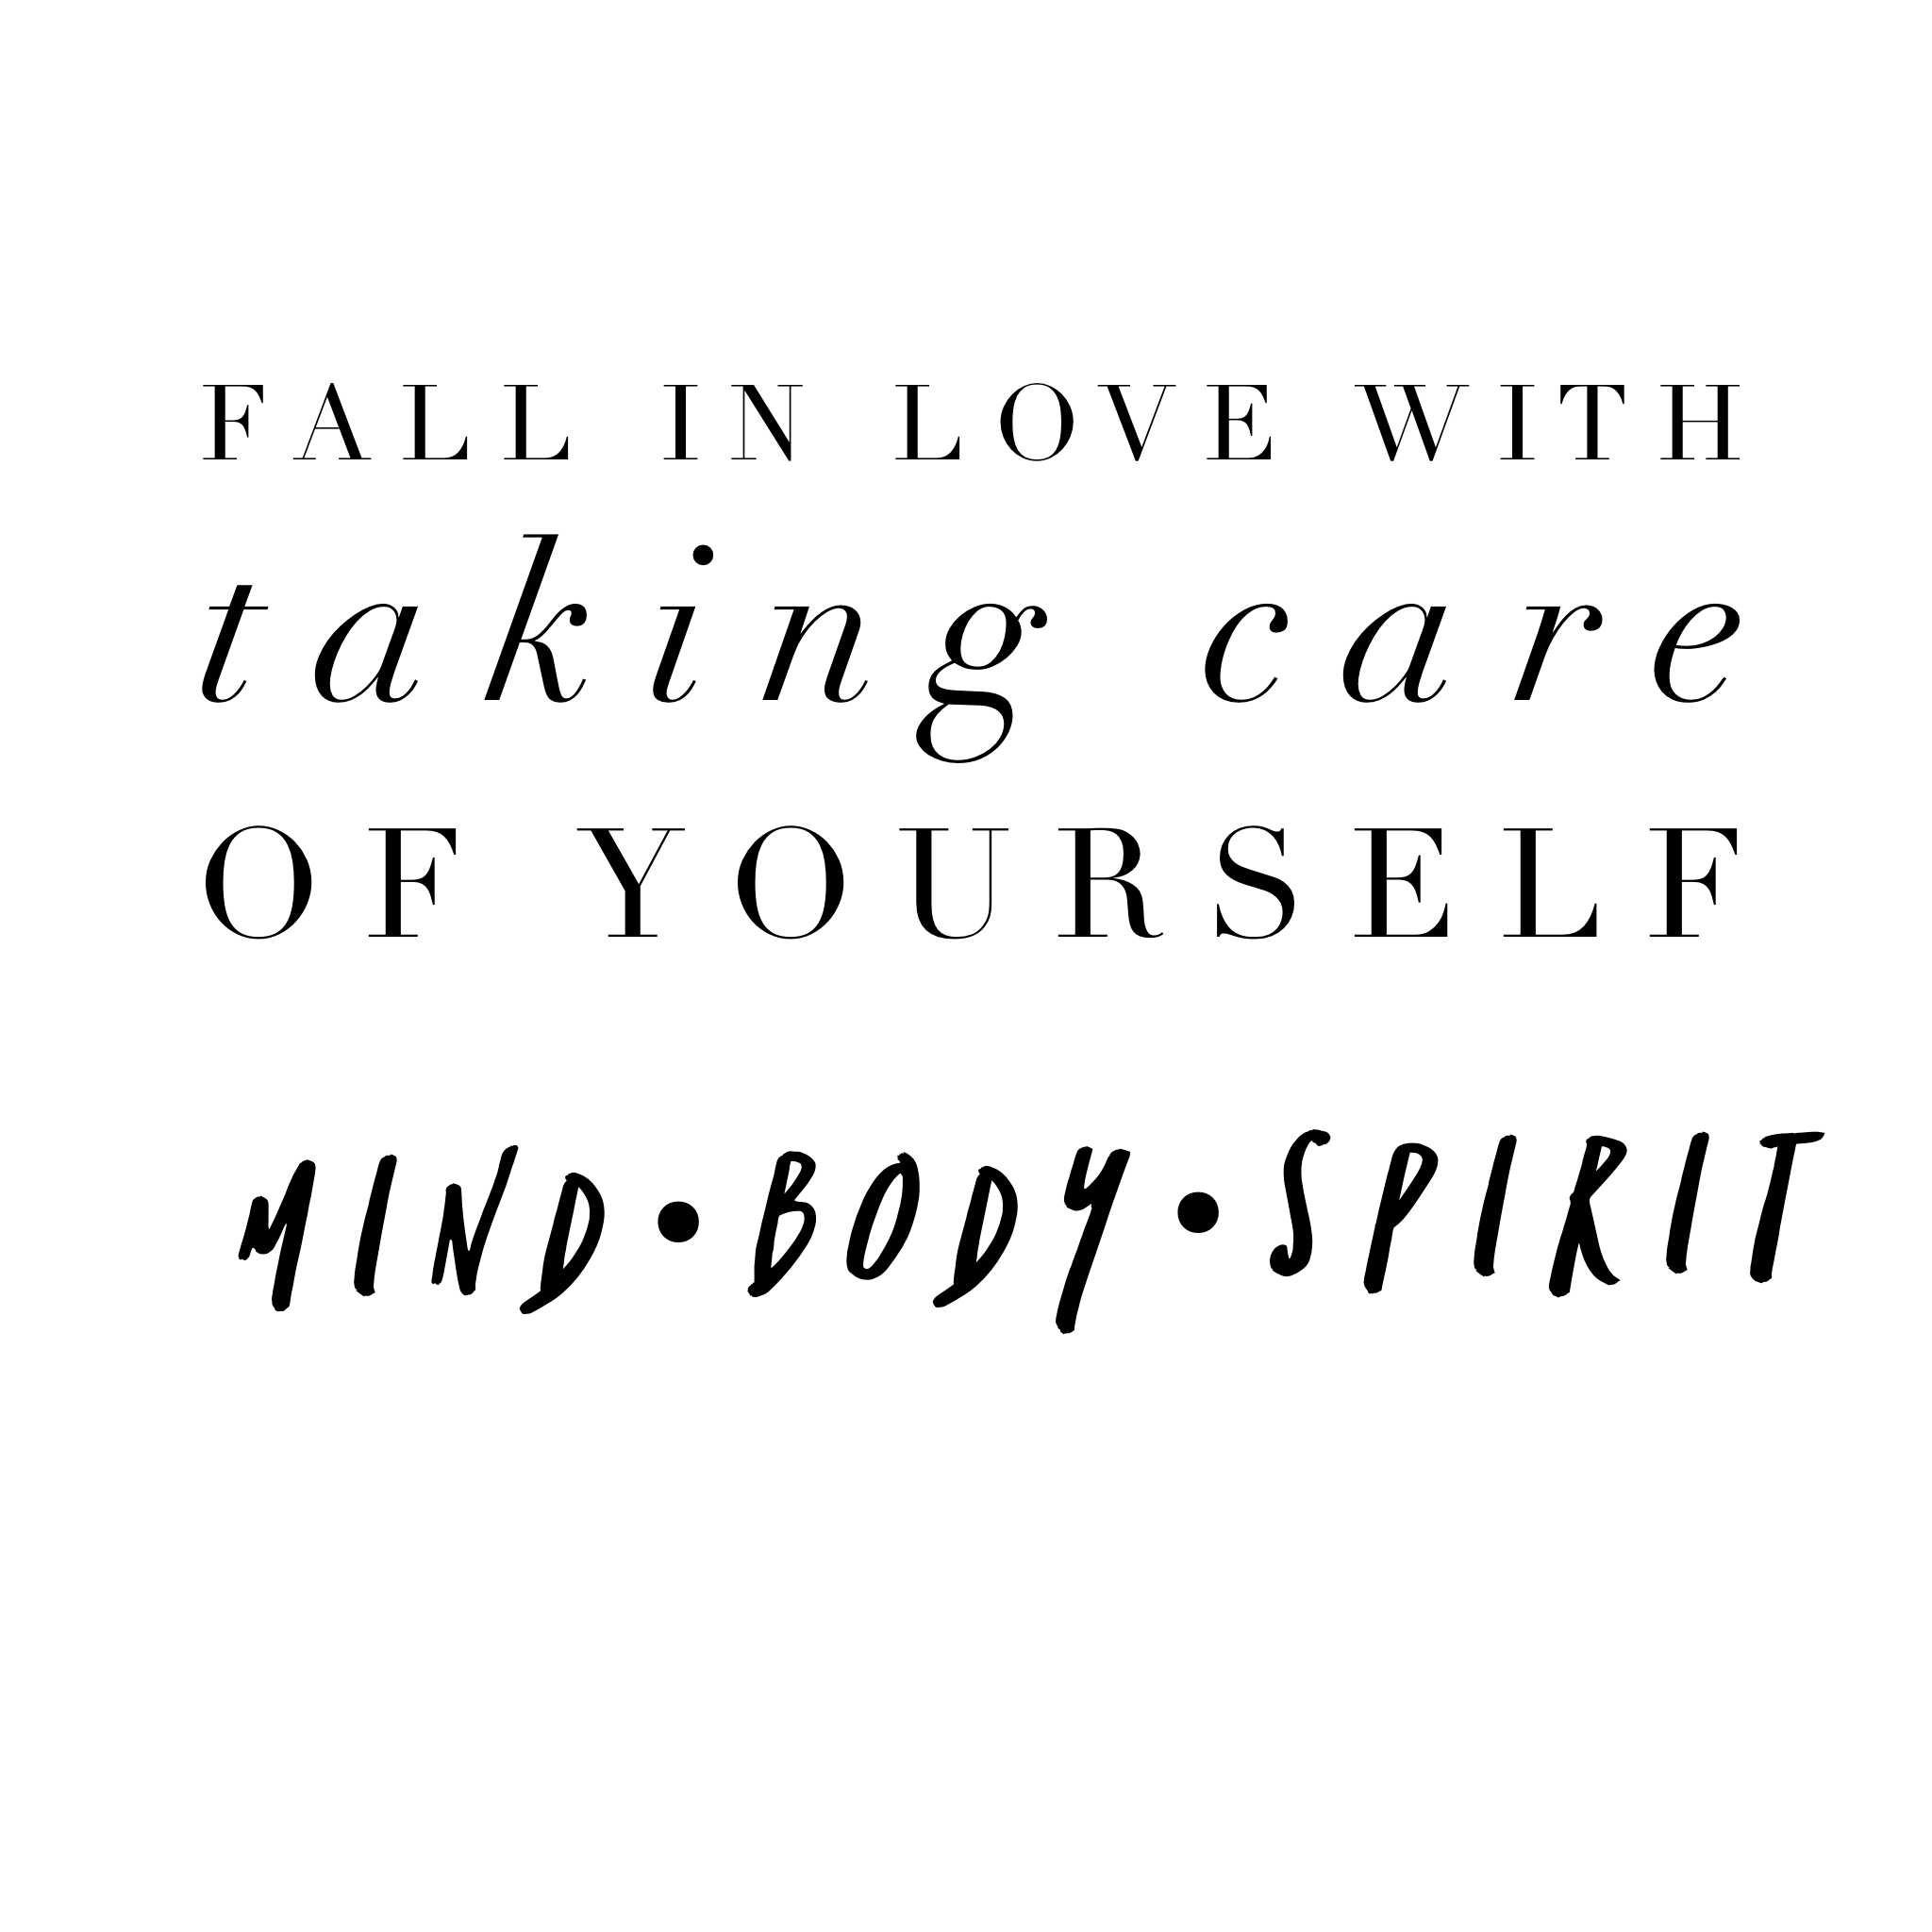 Daily Love Quotes: How To Make Self Care A Priority